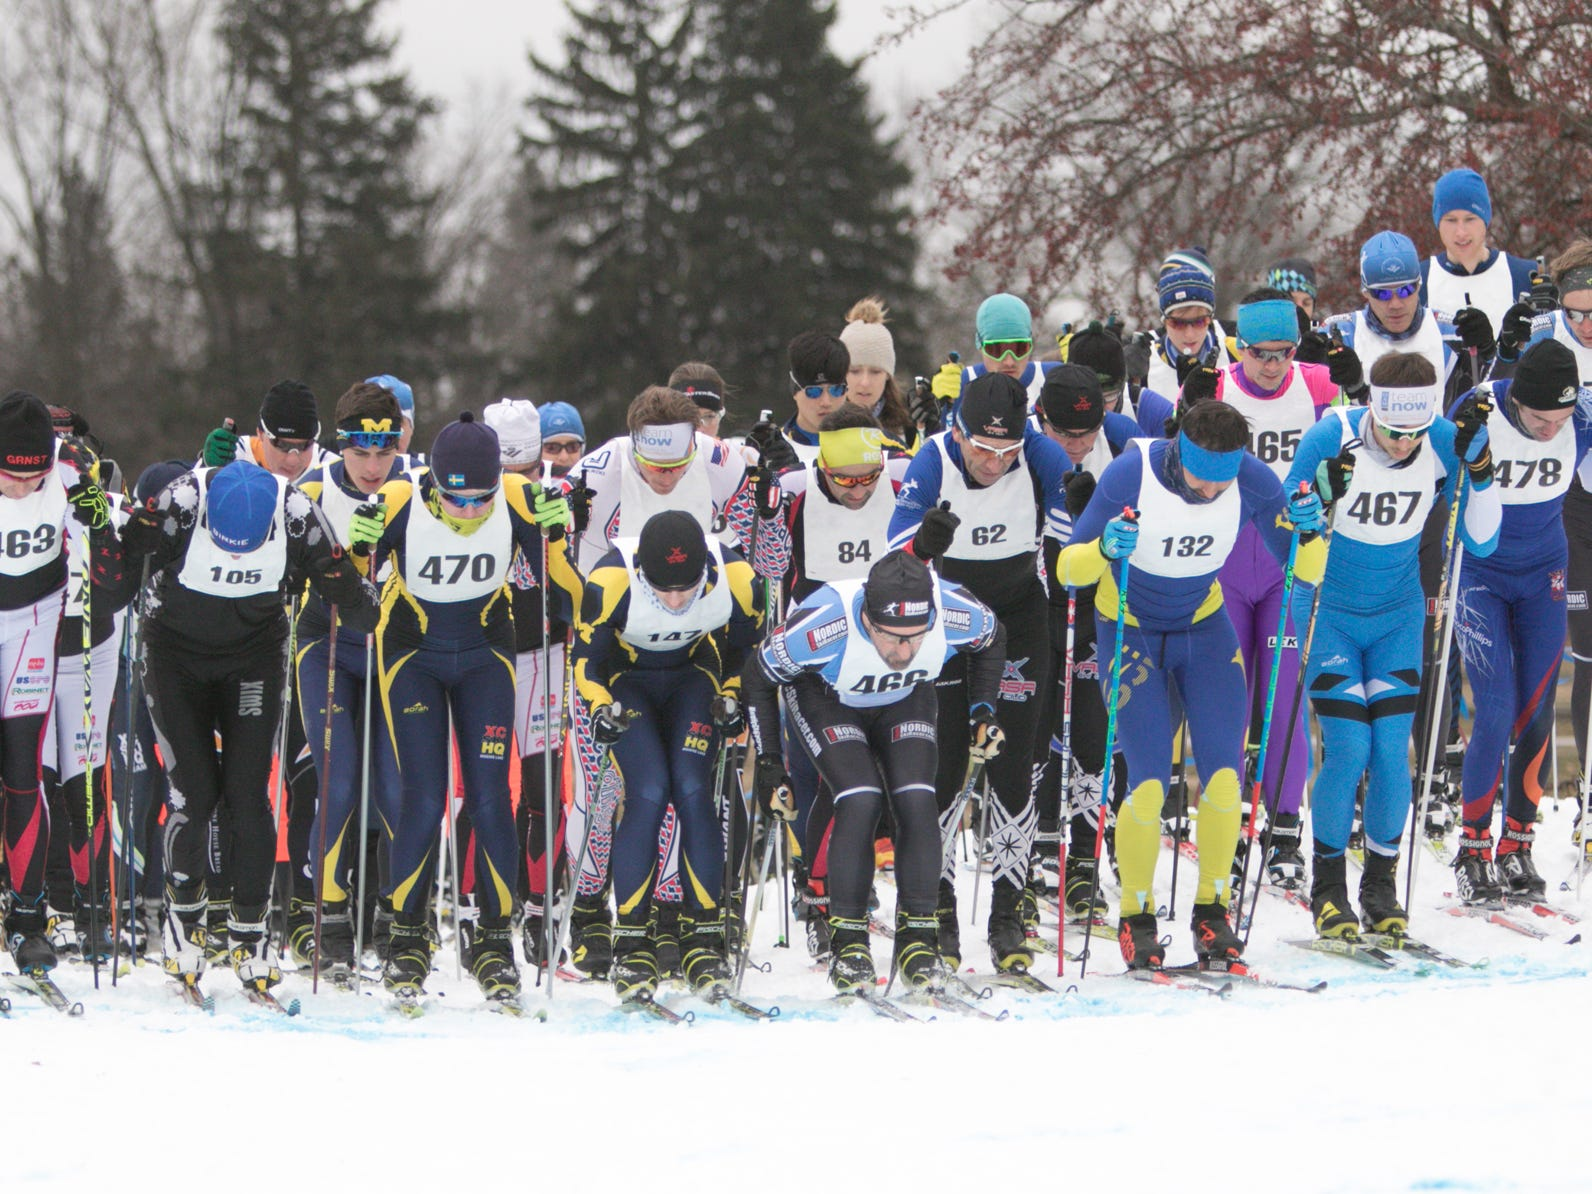 The 15k portion of the Frosty Freestyle cross-country race gets underway in three waves Saturday, Jan. 12, 2019 at Huron Meadows Metropark. Each skier wears a chip that will register the time they cross the start and finish line, so starting in waves doesn't put those starting further back at a disadvantage.